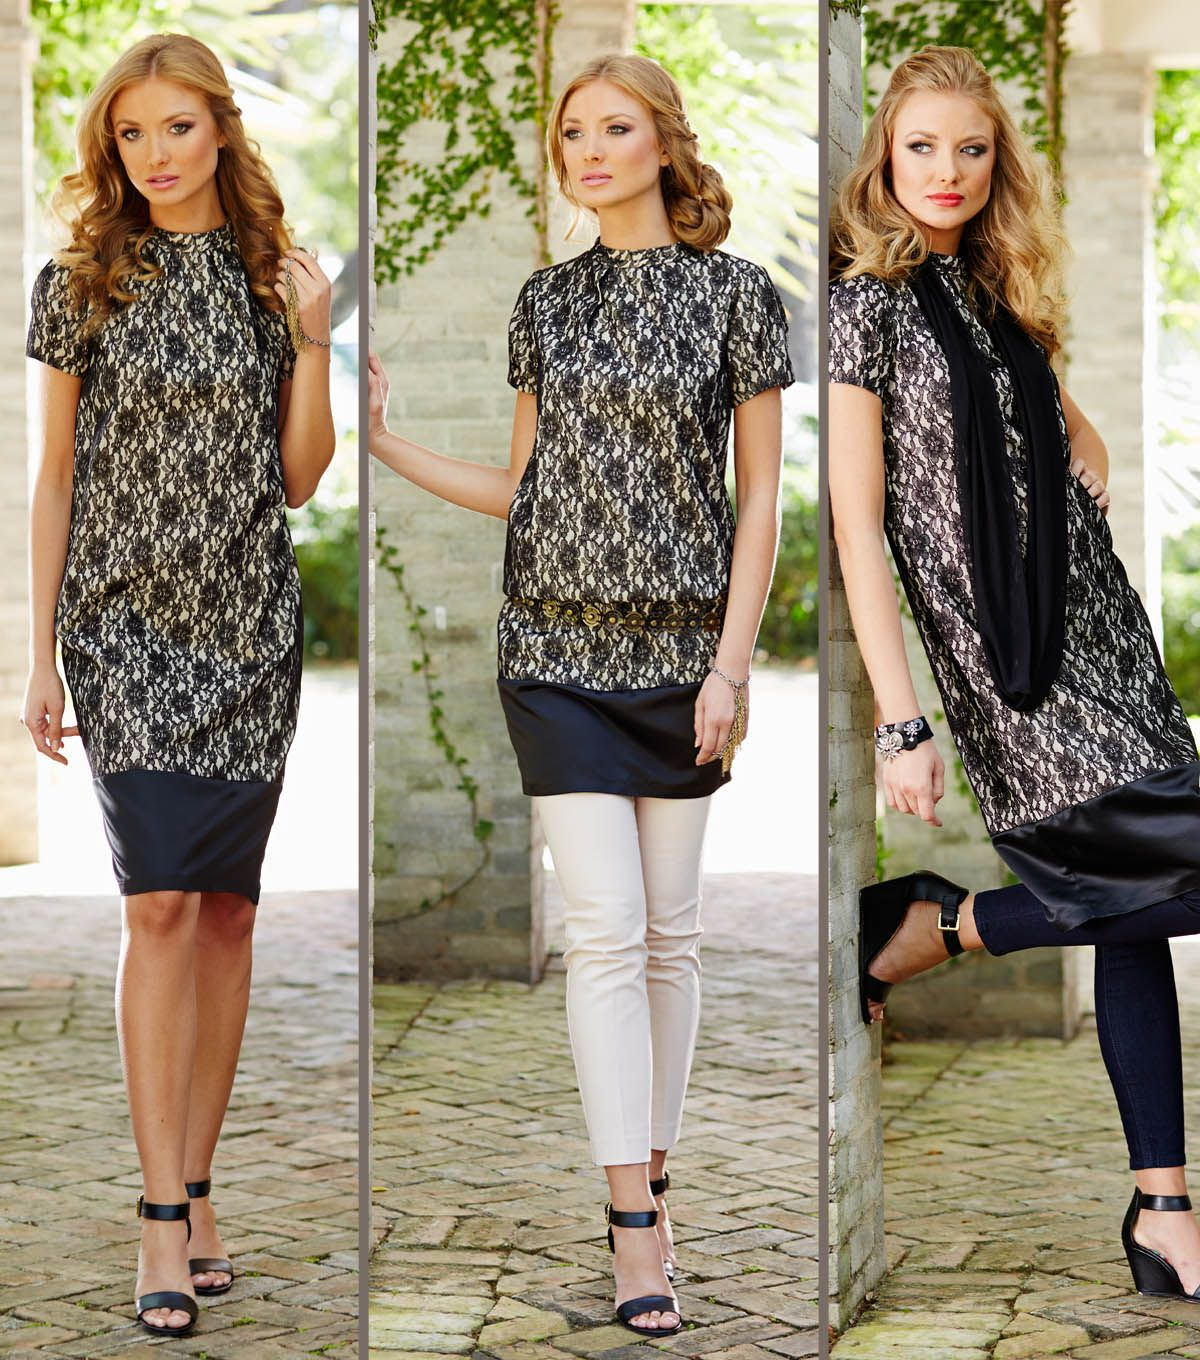 Black dresses for wedding guest  Cream and Black Lace Dress with Accessories at Joann